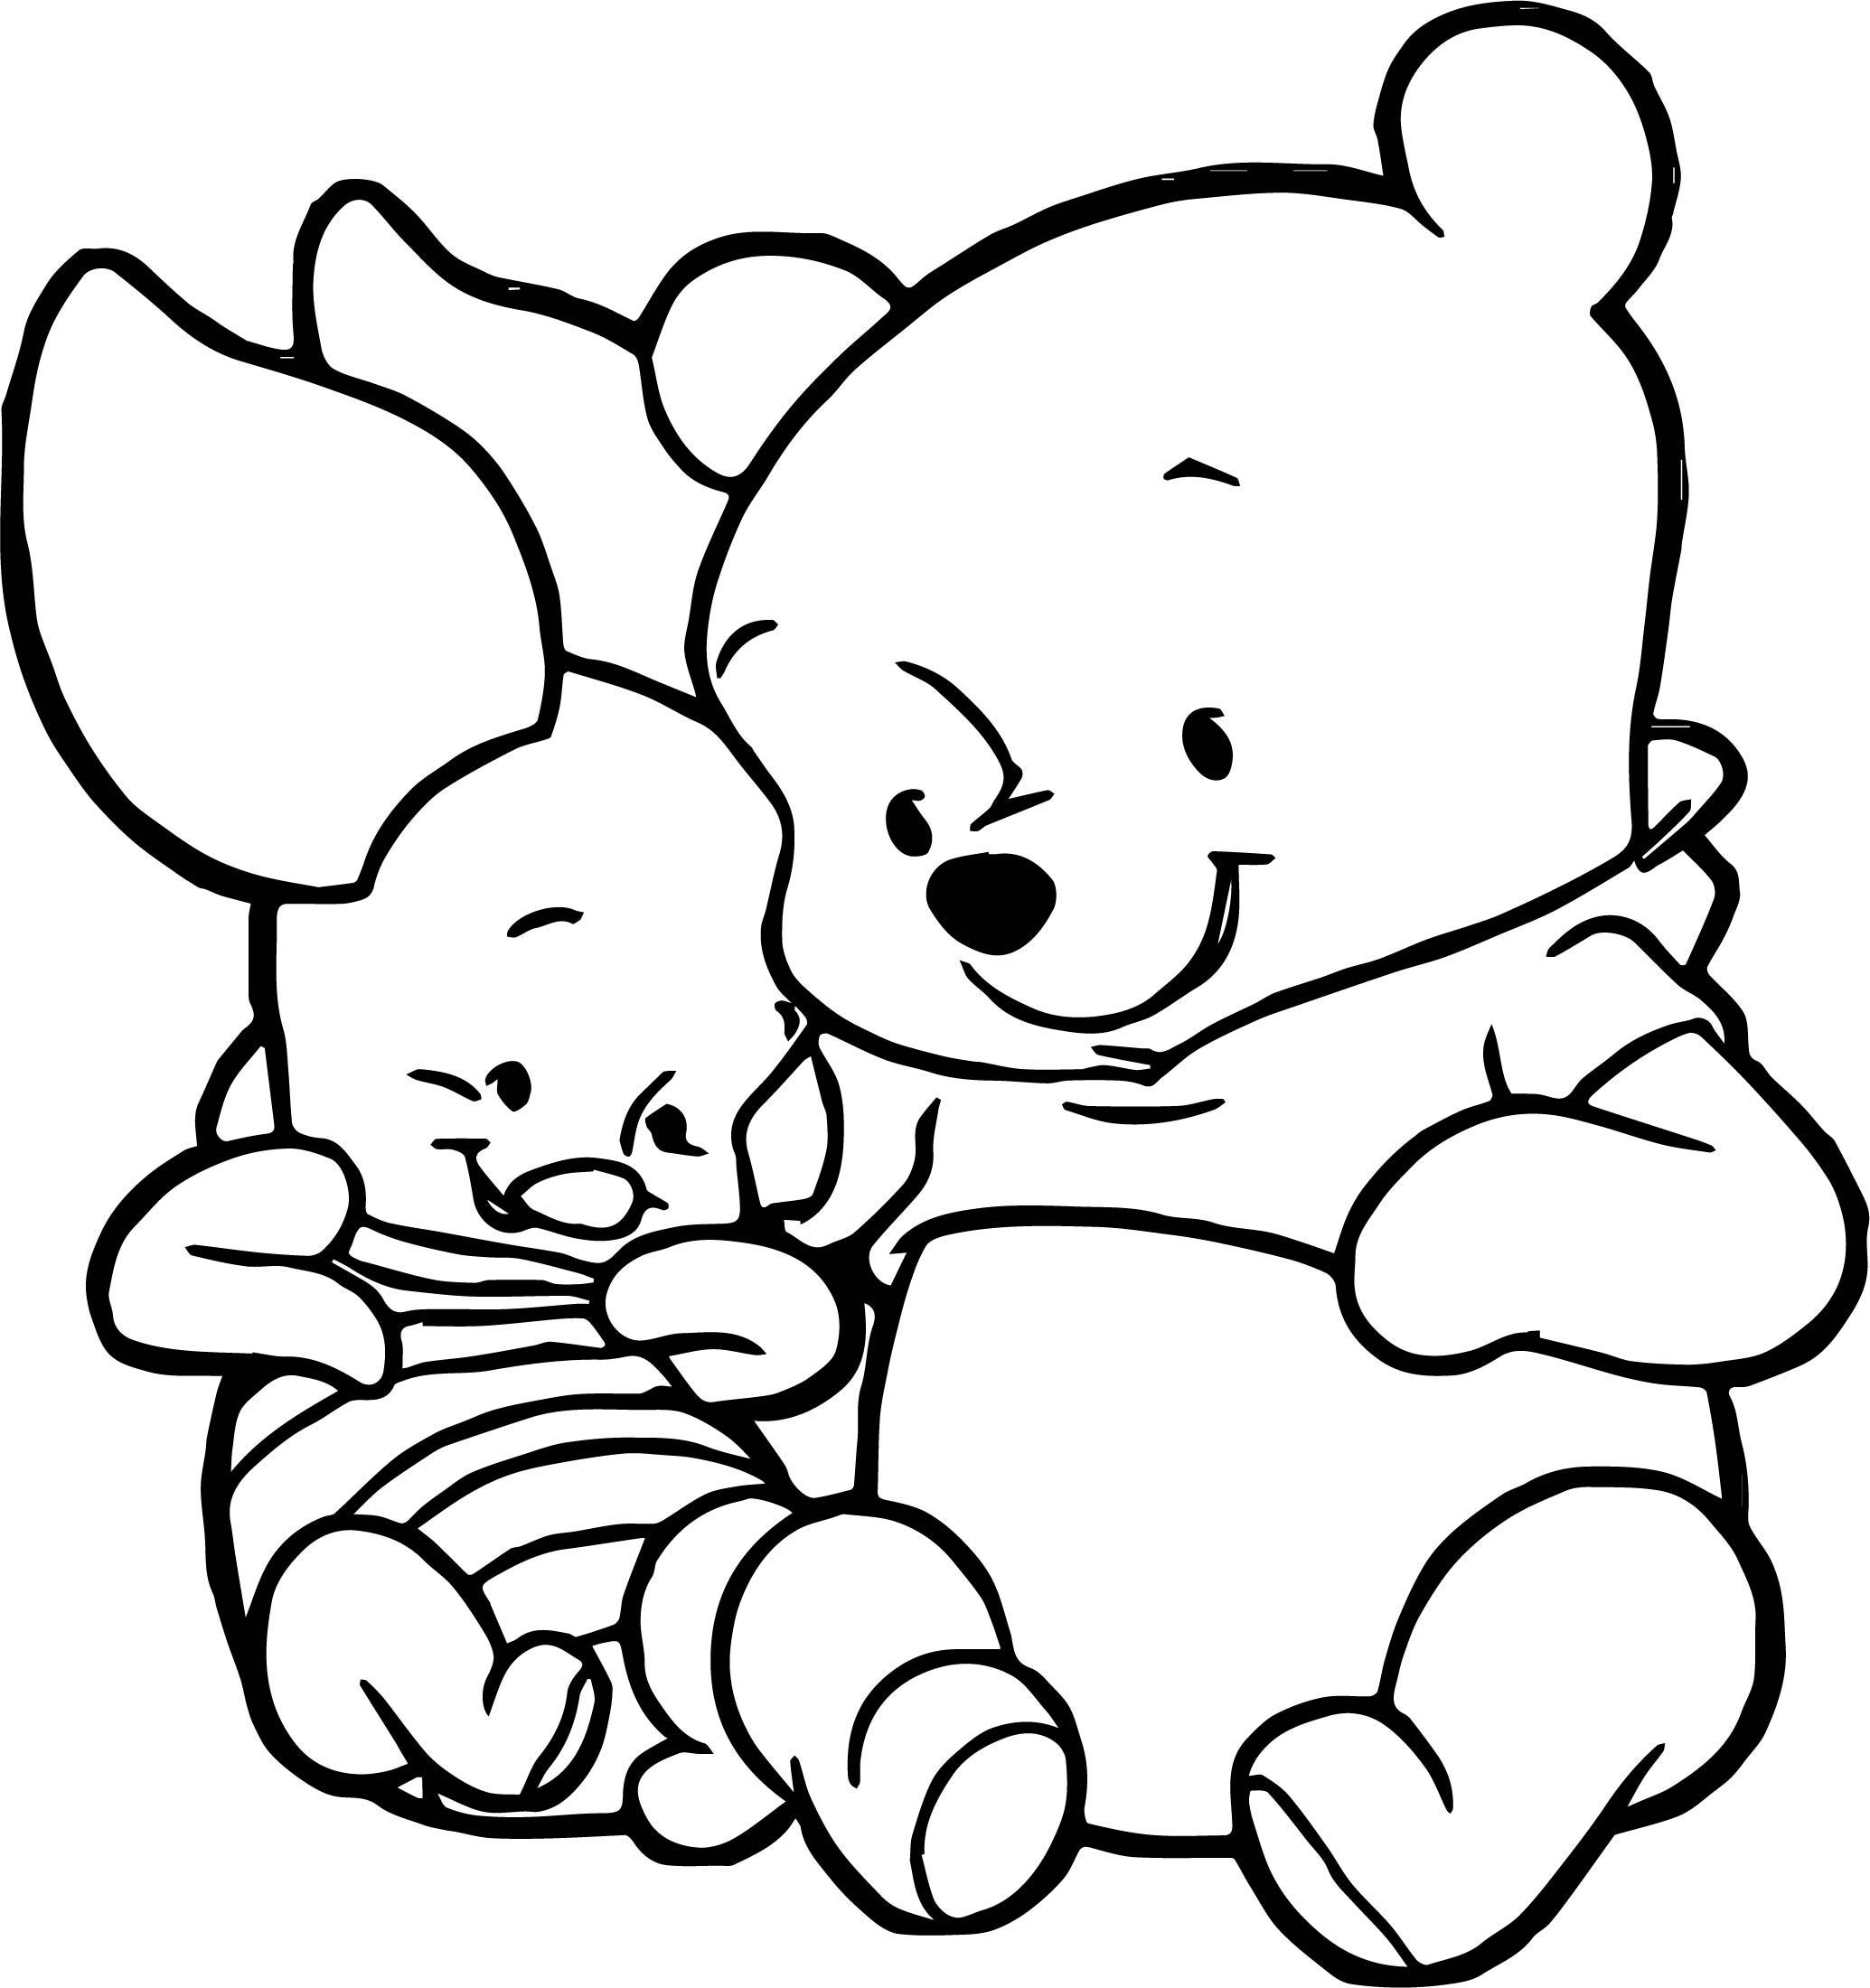 Baby piglet coloring pages ~ Cute Winnie The Pooh Coloring Pages at GetDrawings.com ...